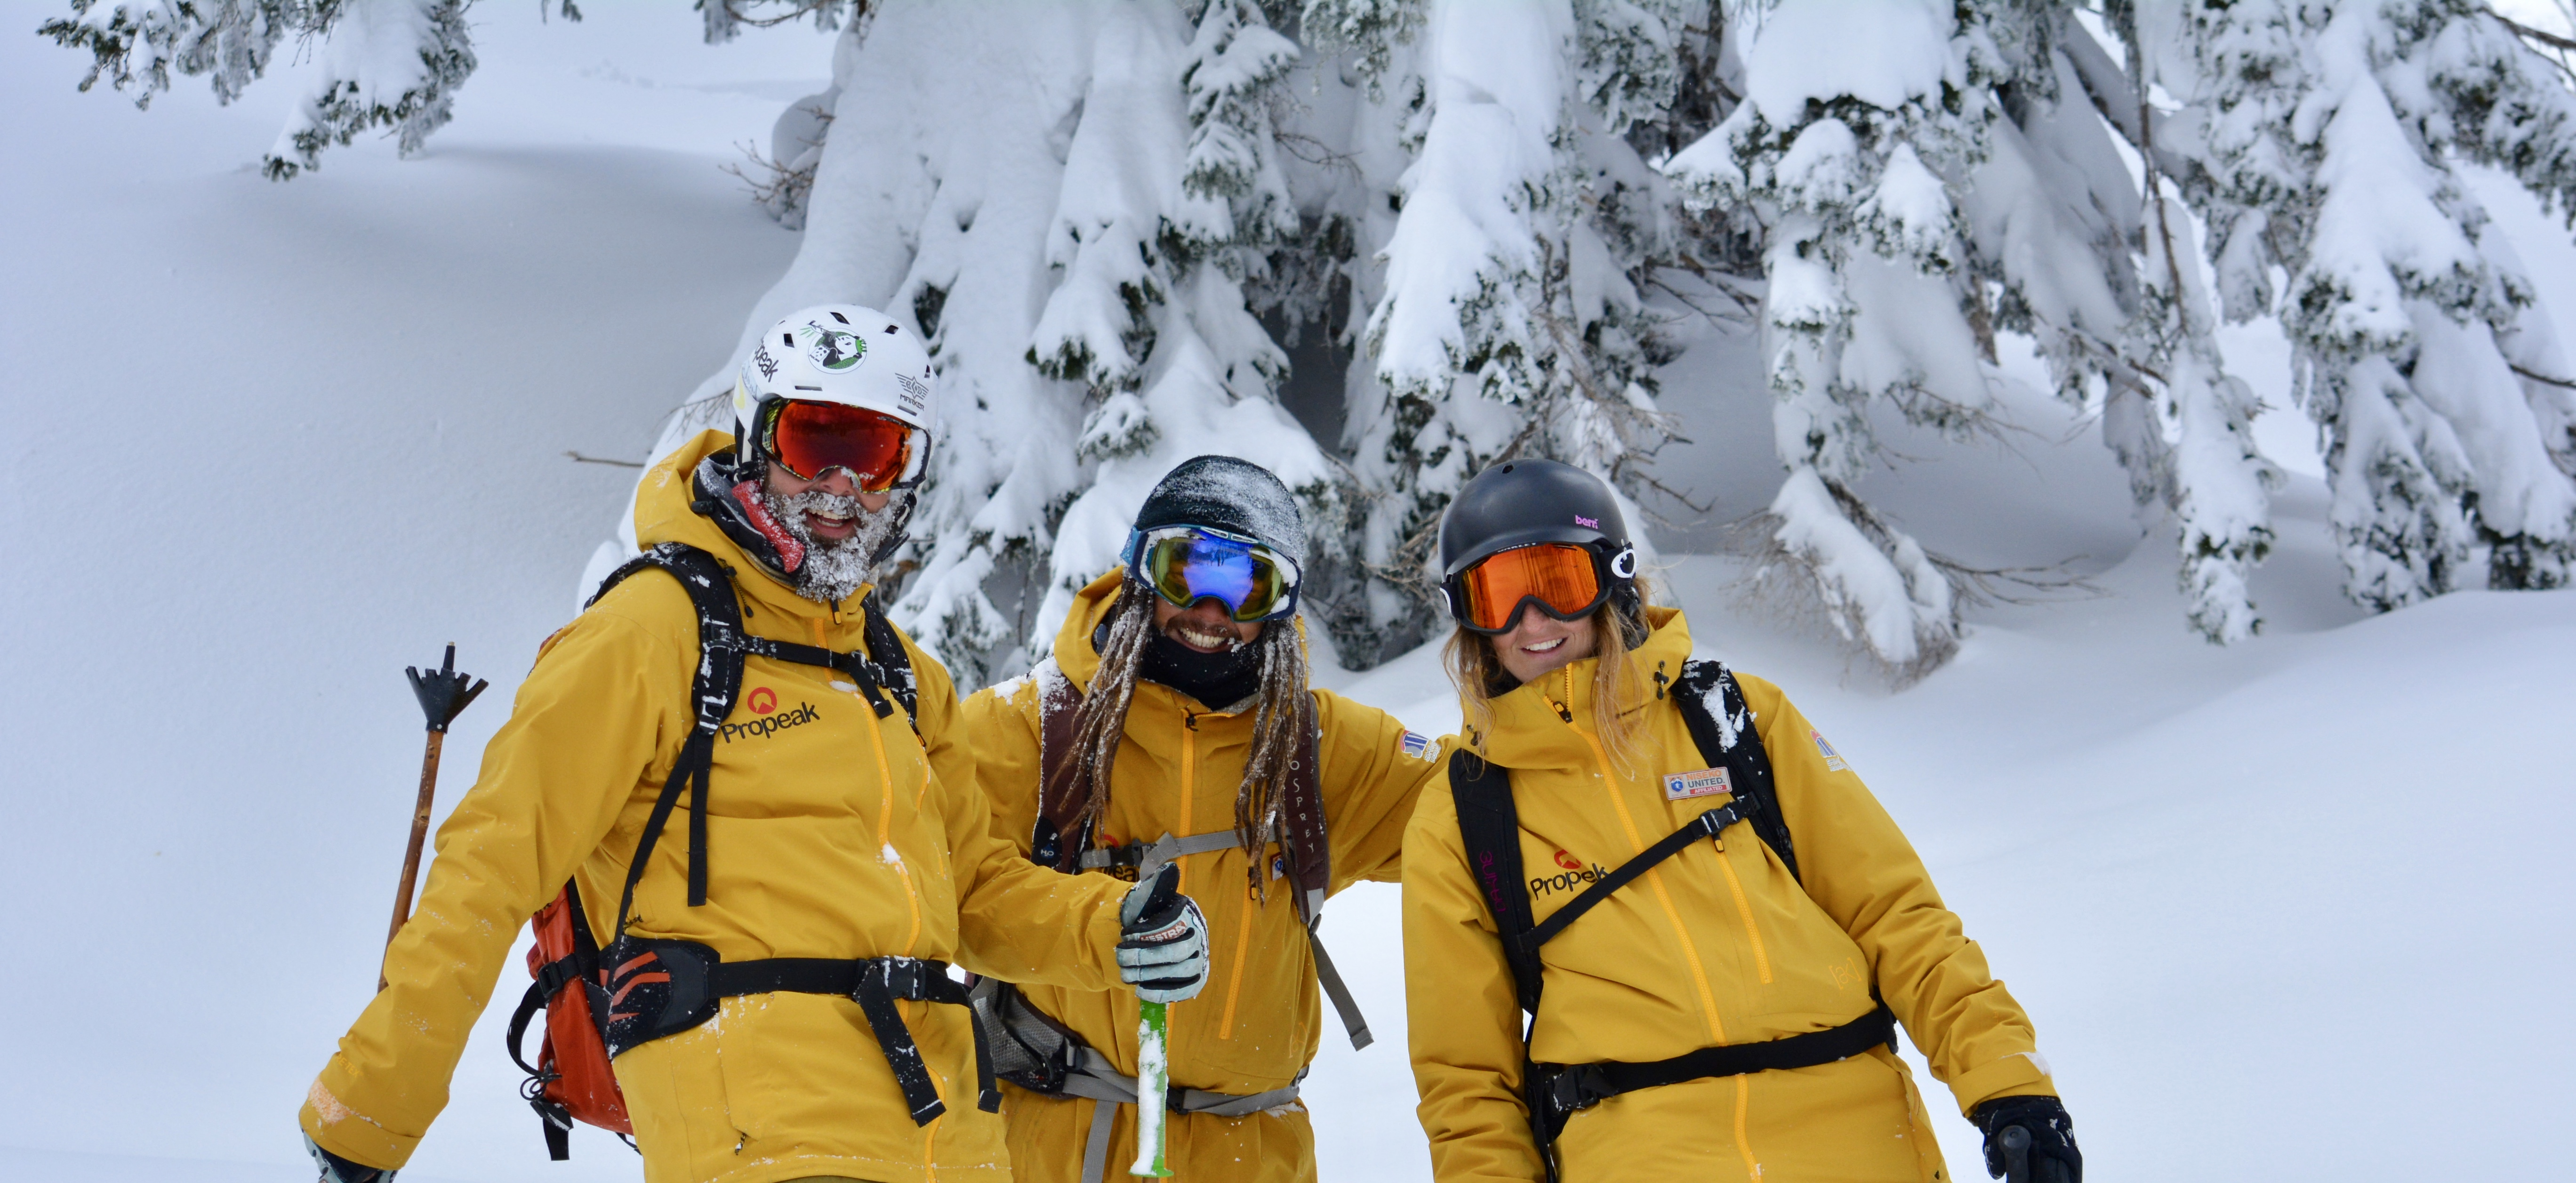 We Are Sno ski instructor course students